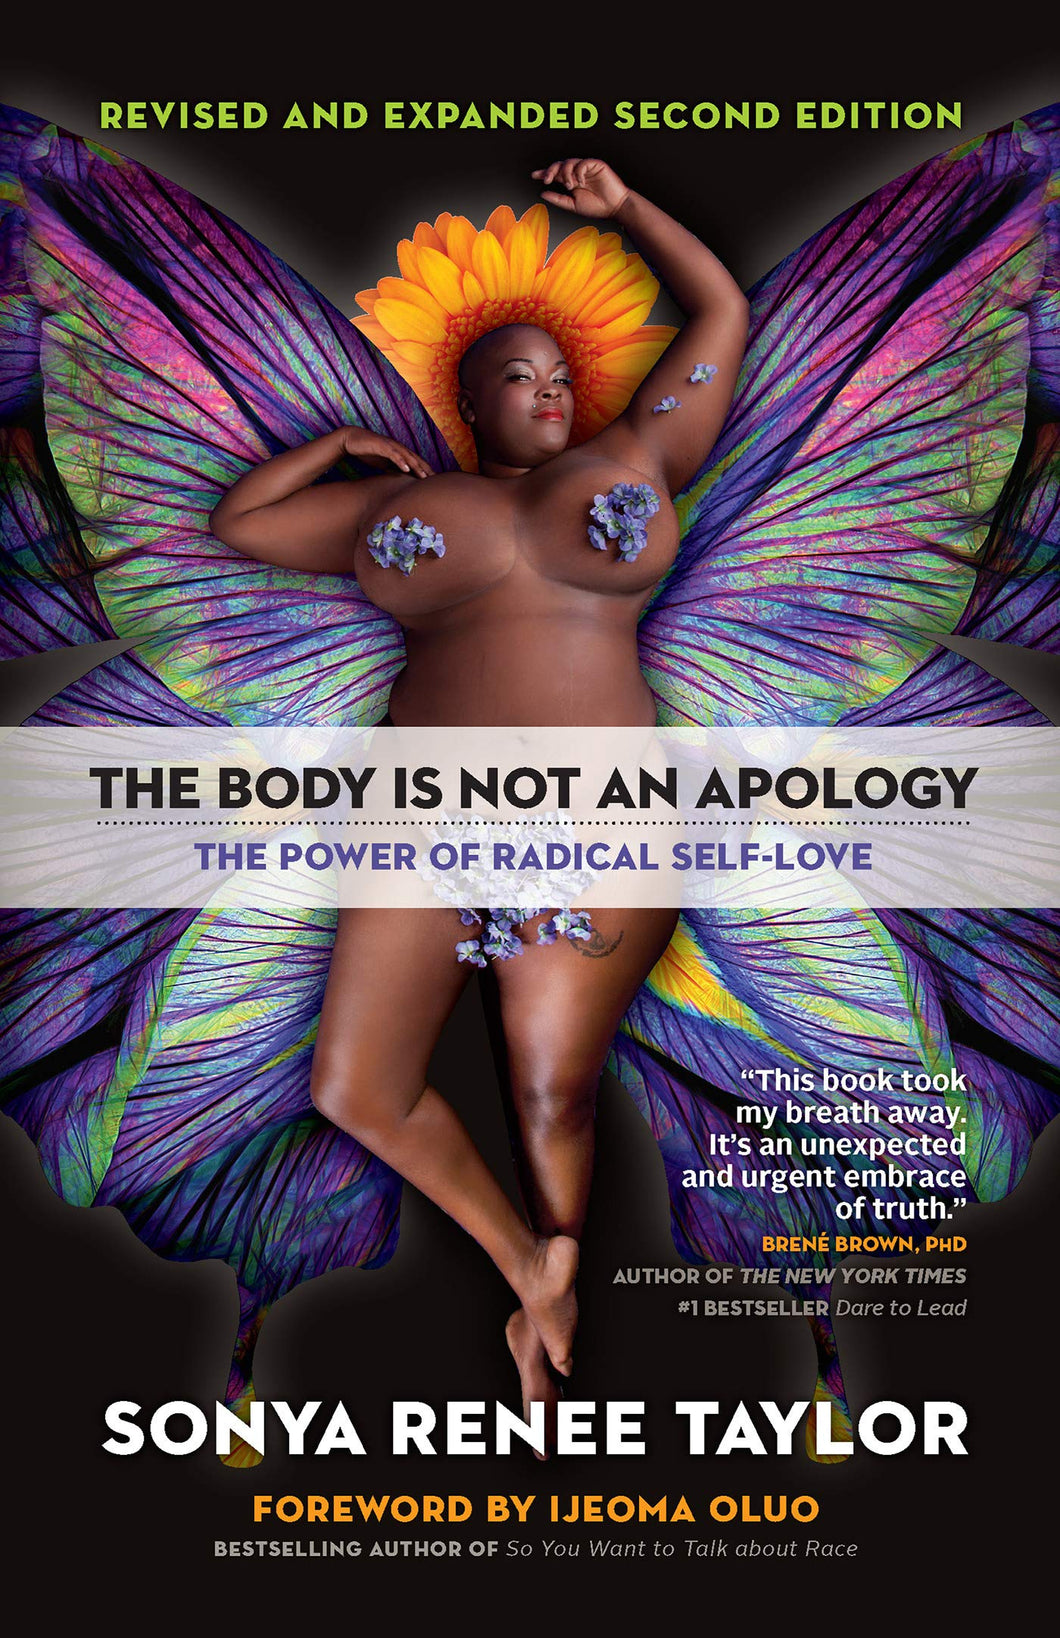 The Body Is Not an Apology, Second Edition: The Power of Radical Self-Love by Sonya Renee Taylor (Pre-order, Feb 9)